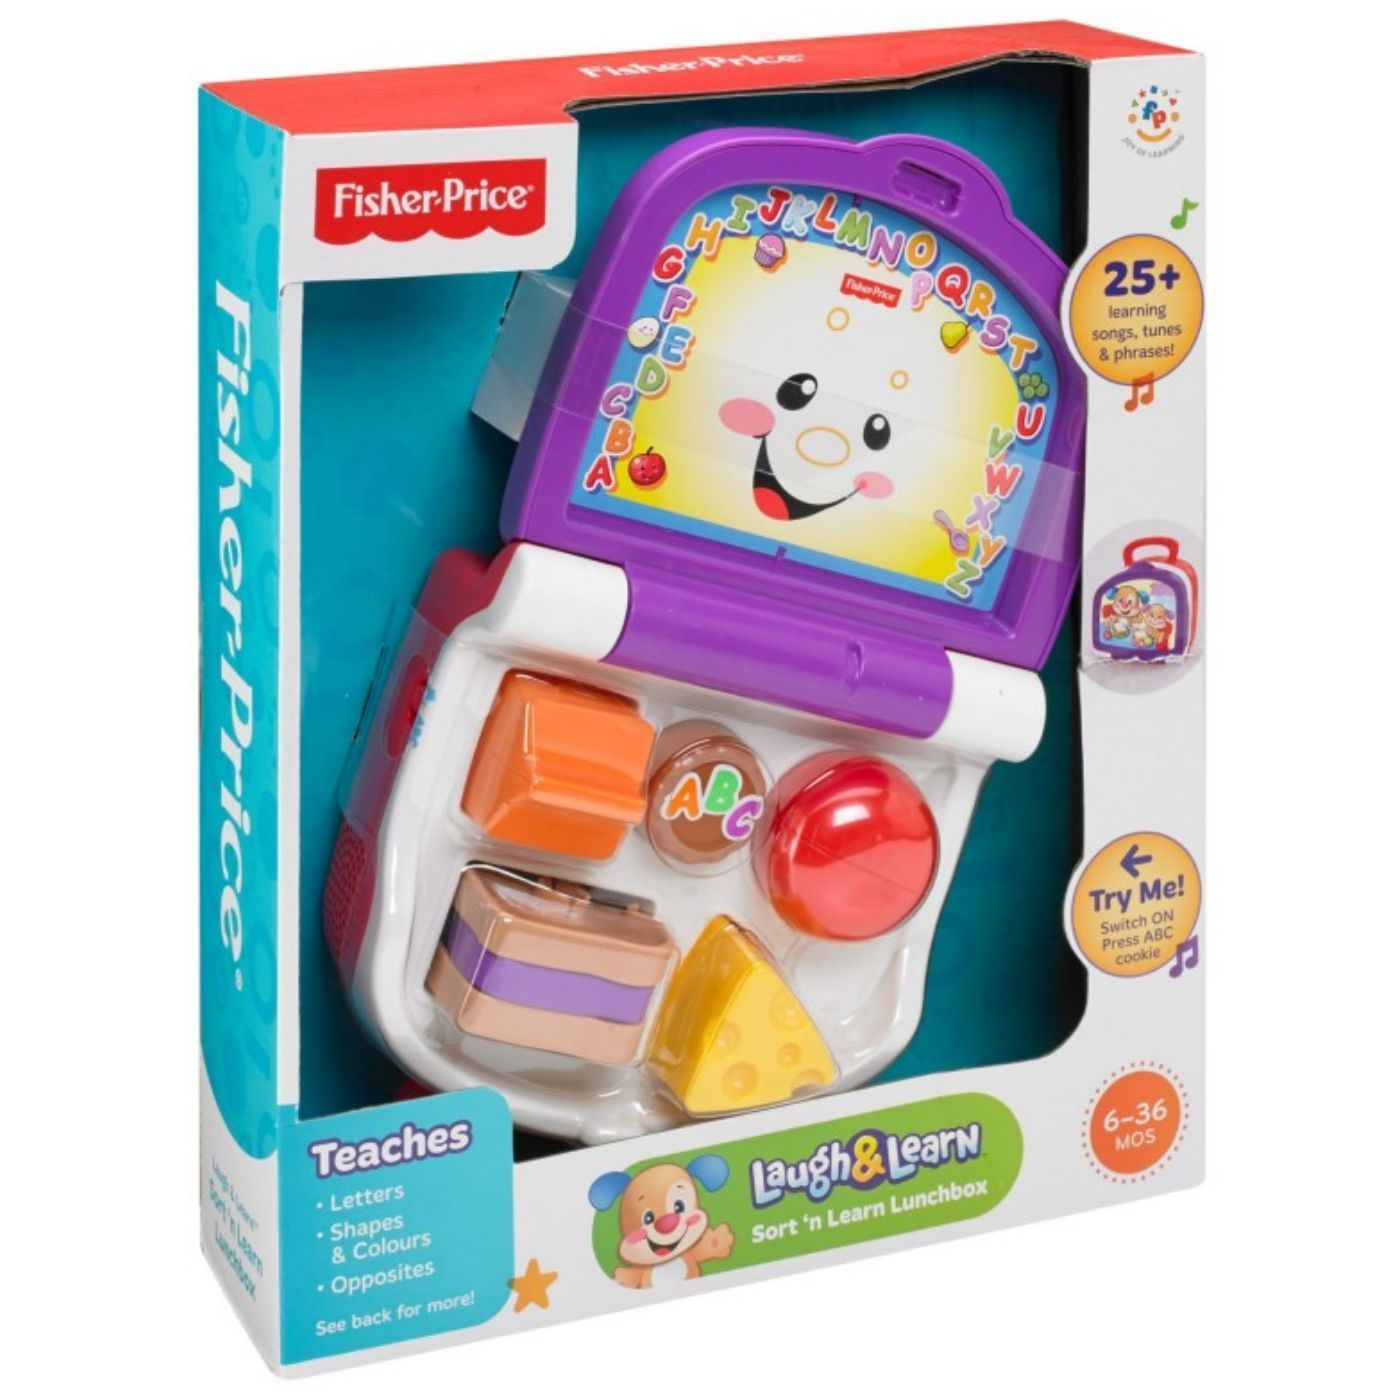 Fisher-Price | TheToyShop.com - the online home of The ...